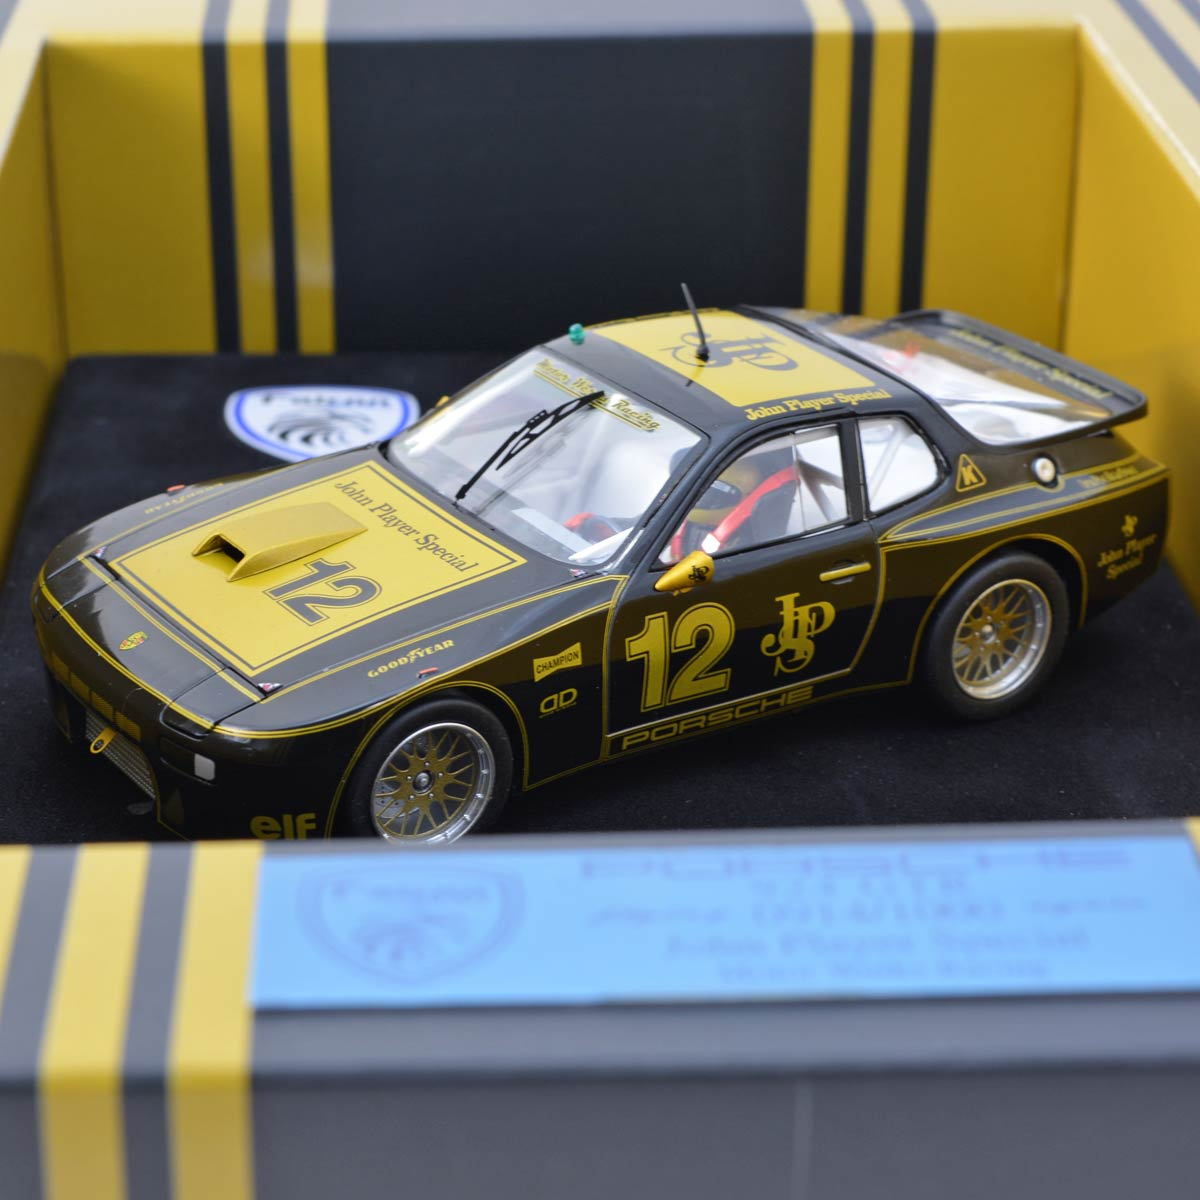 Pendle Slot Racing Scalextric Cars Spares Track Sets